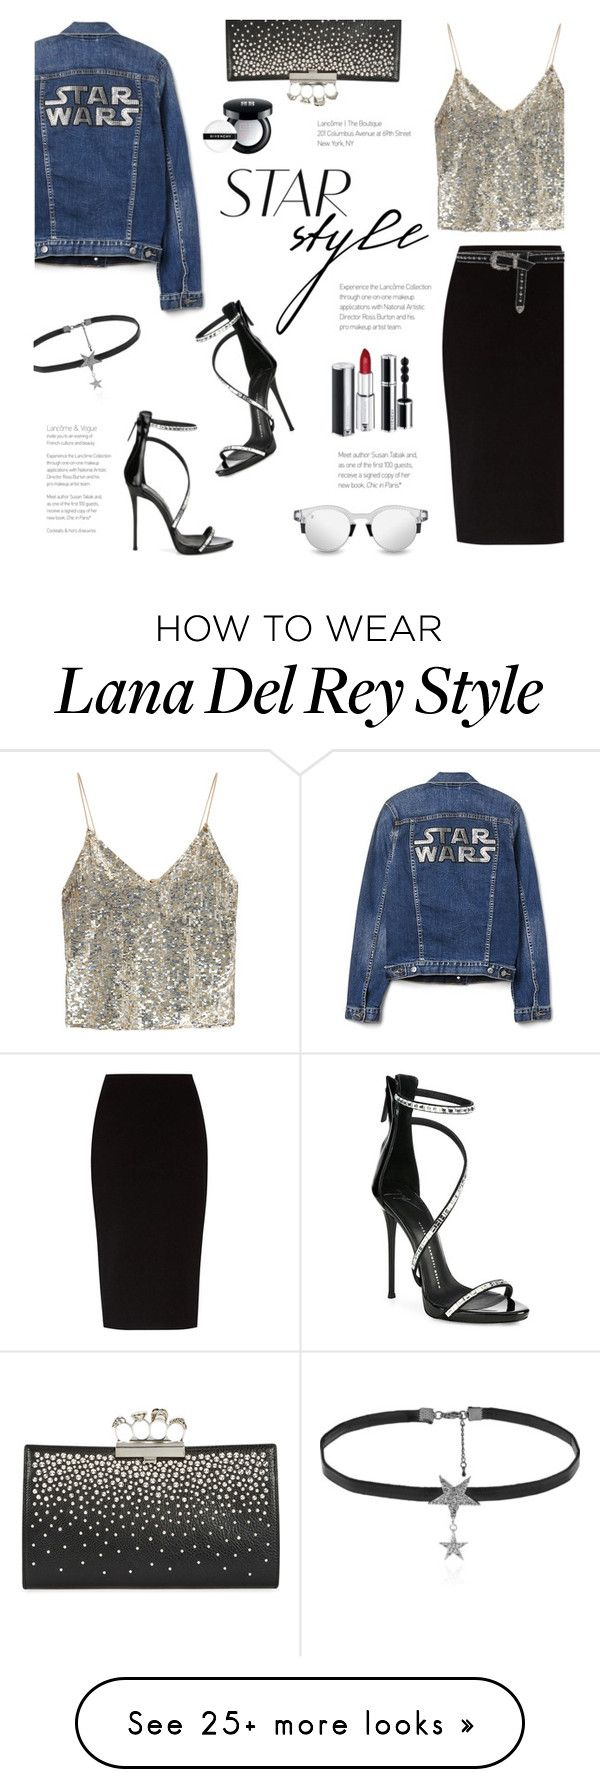 """""""Star Struck"""" by lisalockhart on Polyvore featuring Giuseppe Zanotti, Alice + Olivia, The Row, B-Low the Belt, Alexander McQueen, Love Rocks and Givenchy"""